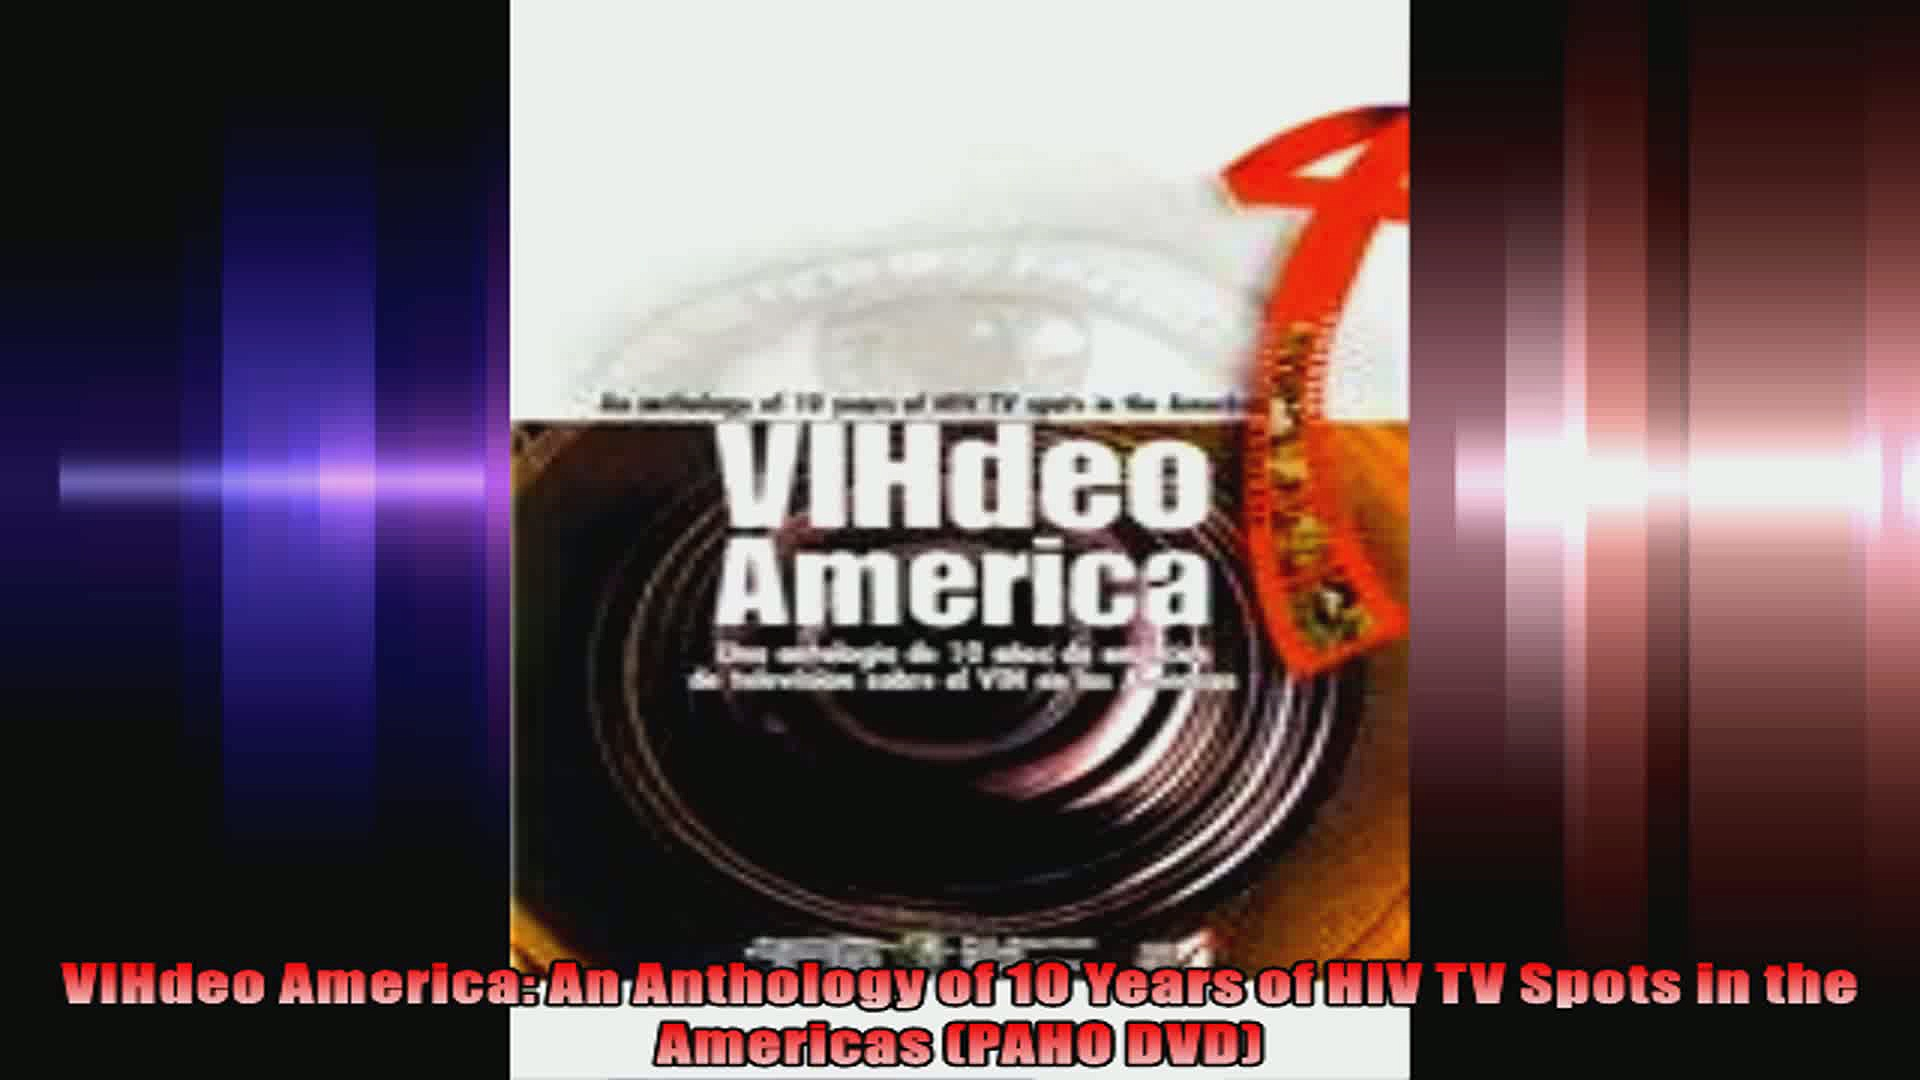 VIHdeo America An Anthology of 10 Years of HIV TV Spots in the Americas PAHO DVD